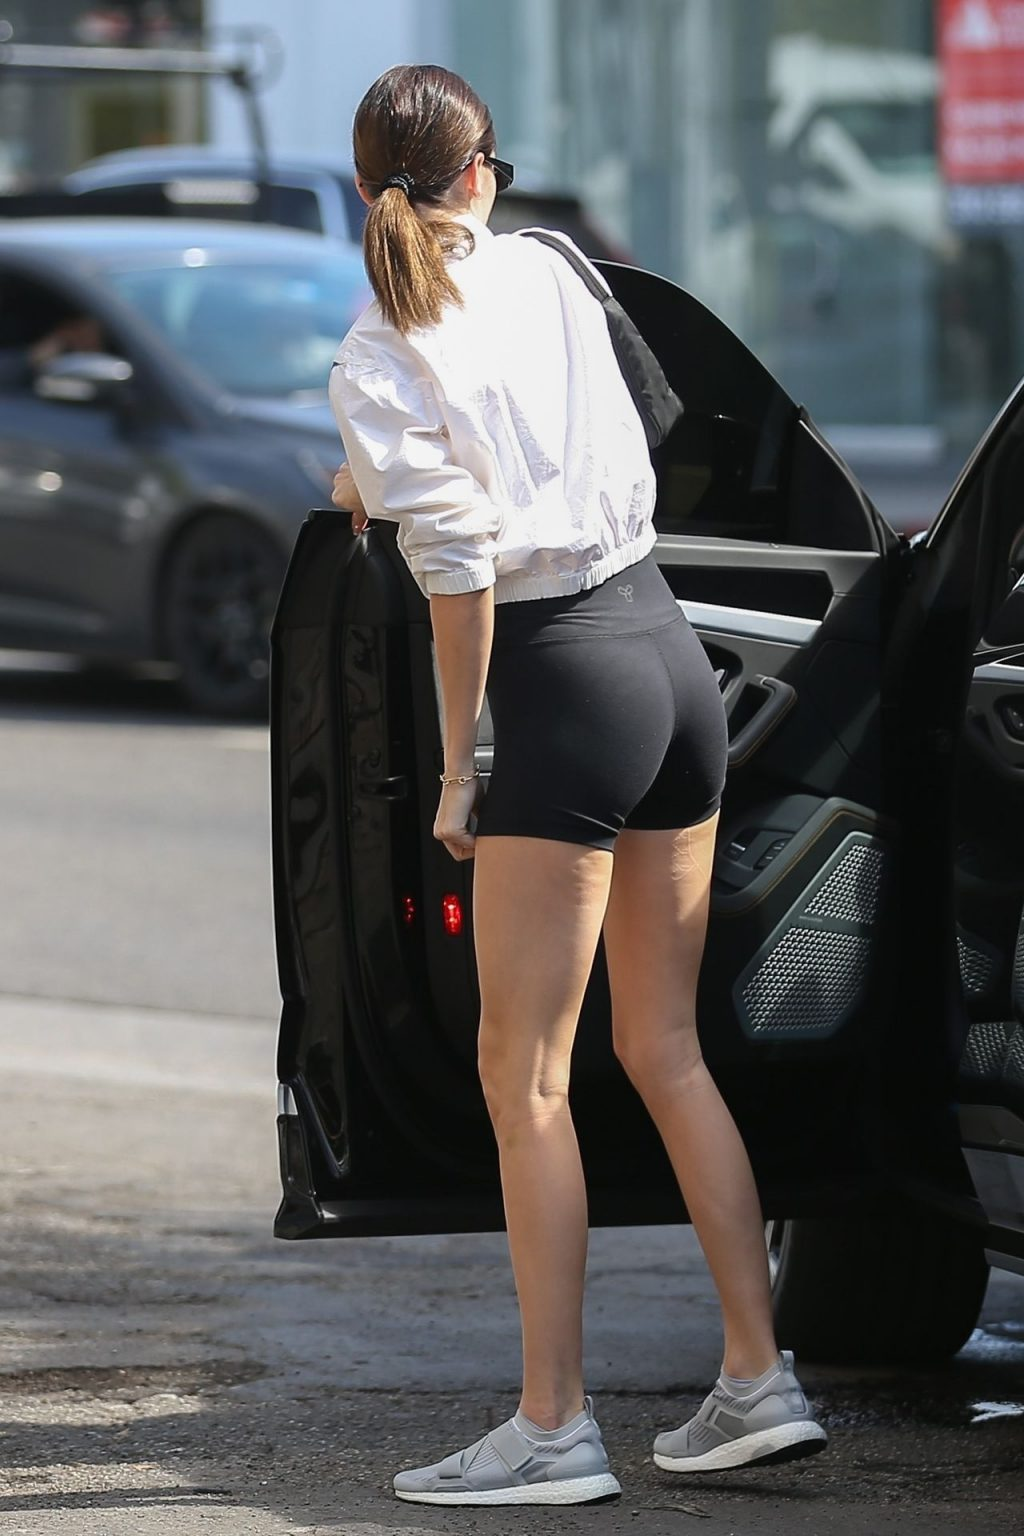 Kendall Jenner Showcases Her Cellulite Legs in Tiny Spandex Shorts in Los Angeles (114 Photos)